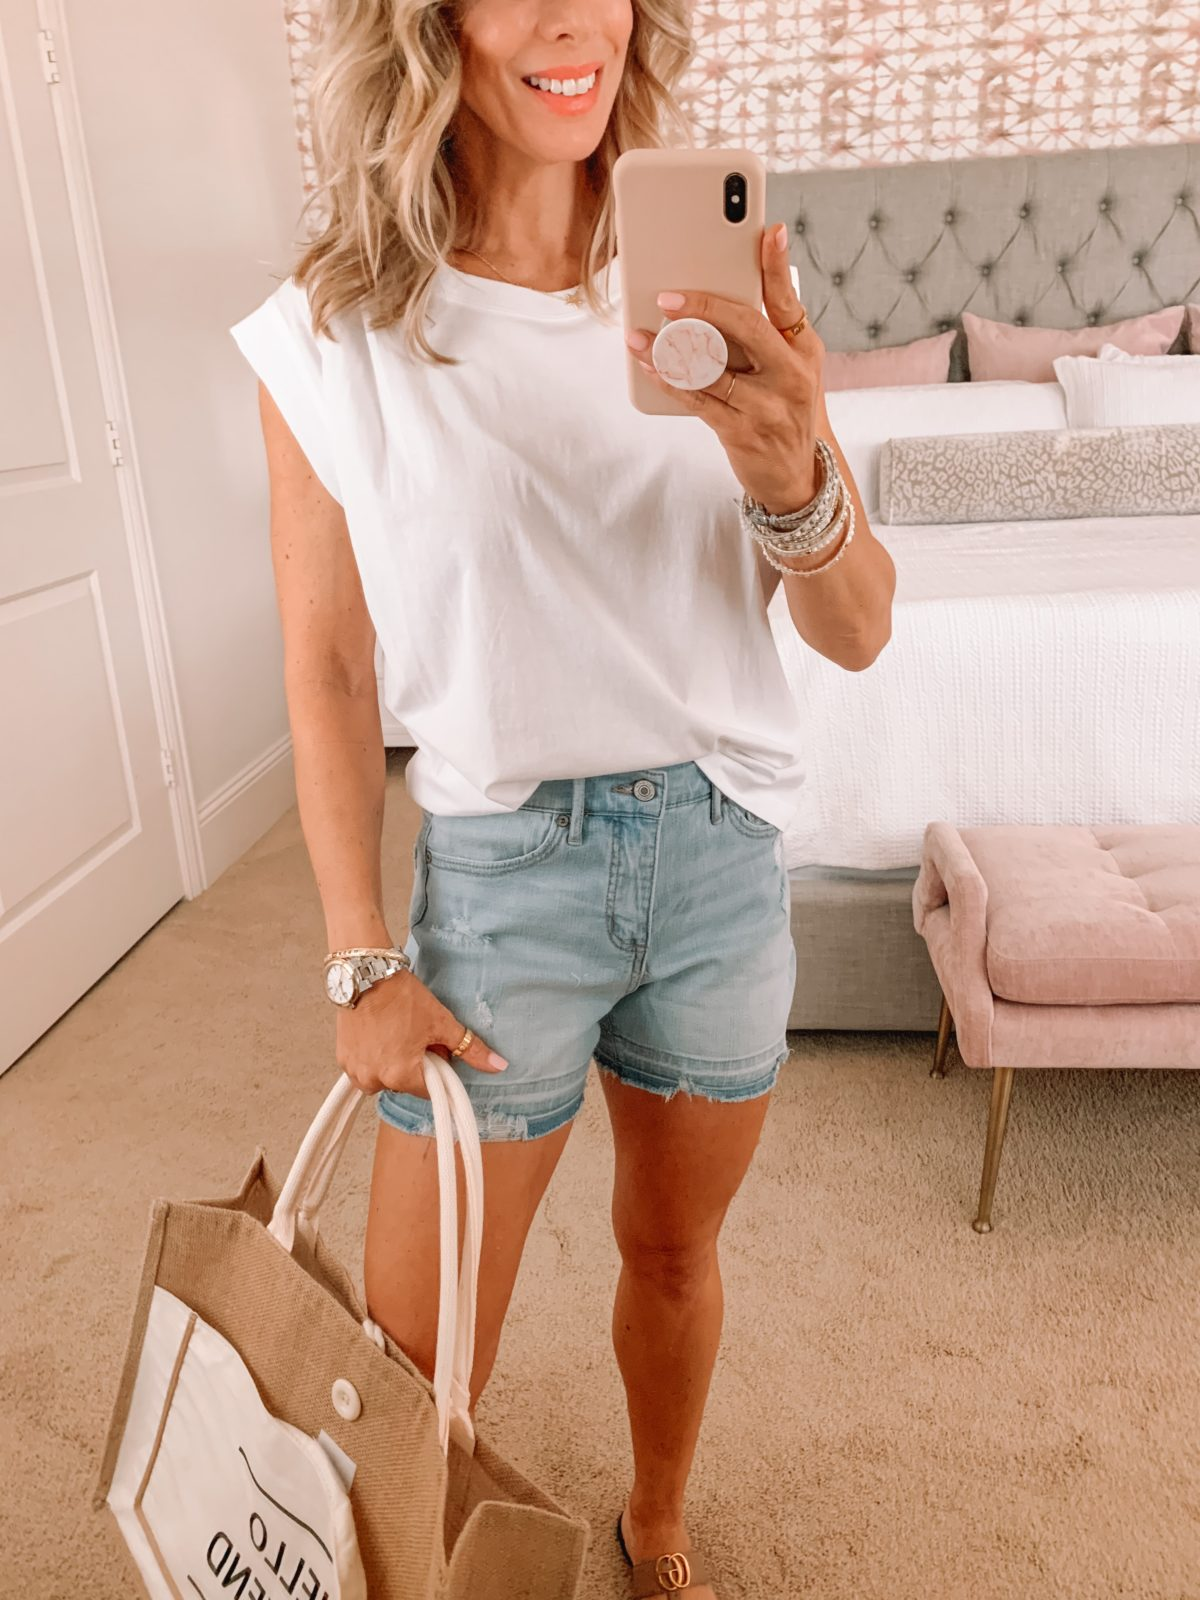 Dressing Room Finds, LOFT, White Muscle Tank, Denim Shorts, Sandals and weekend tote